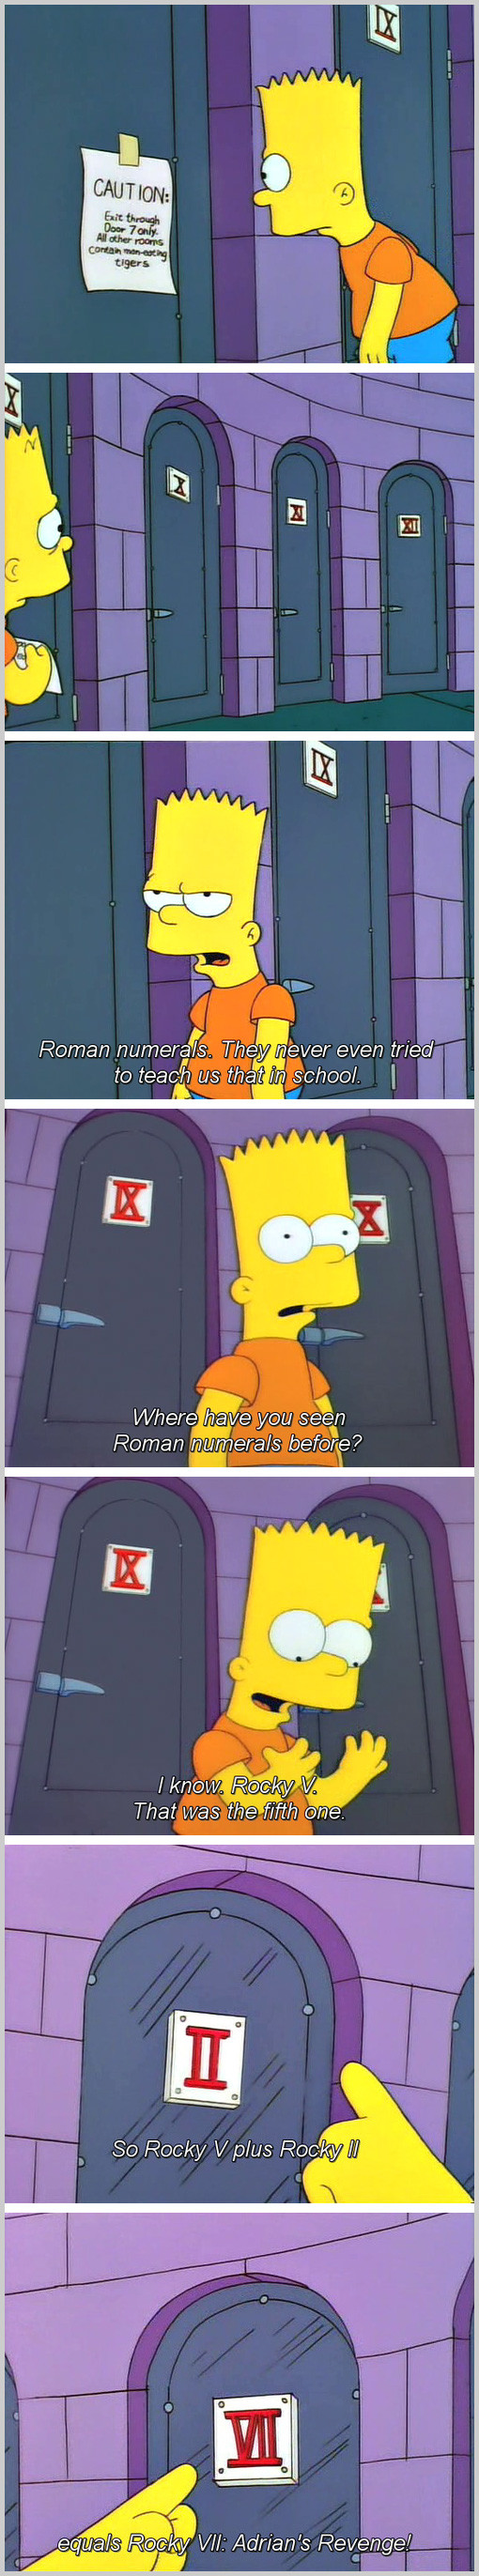 ba2 bart and roman numerals the simpsons know your meme